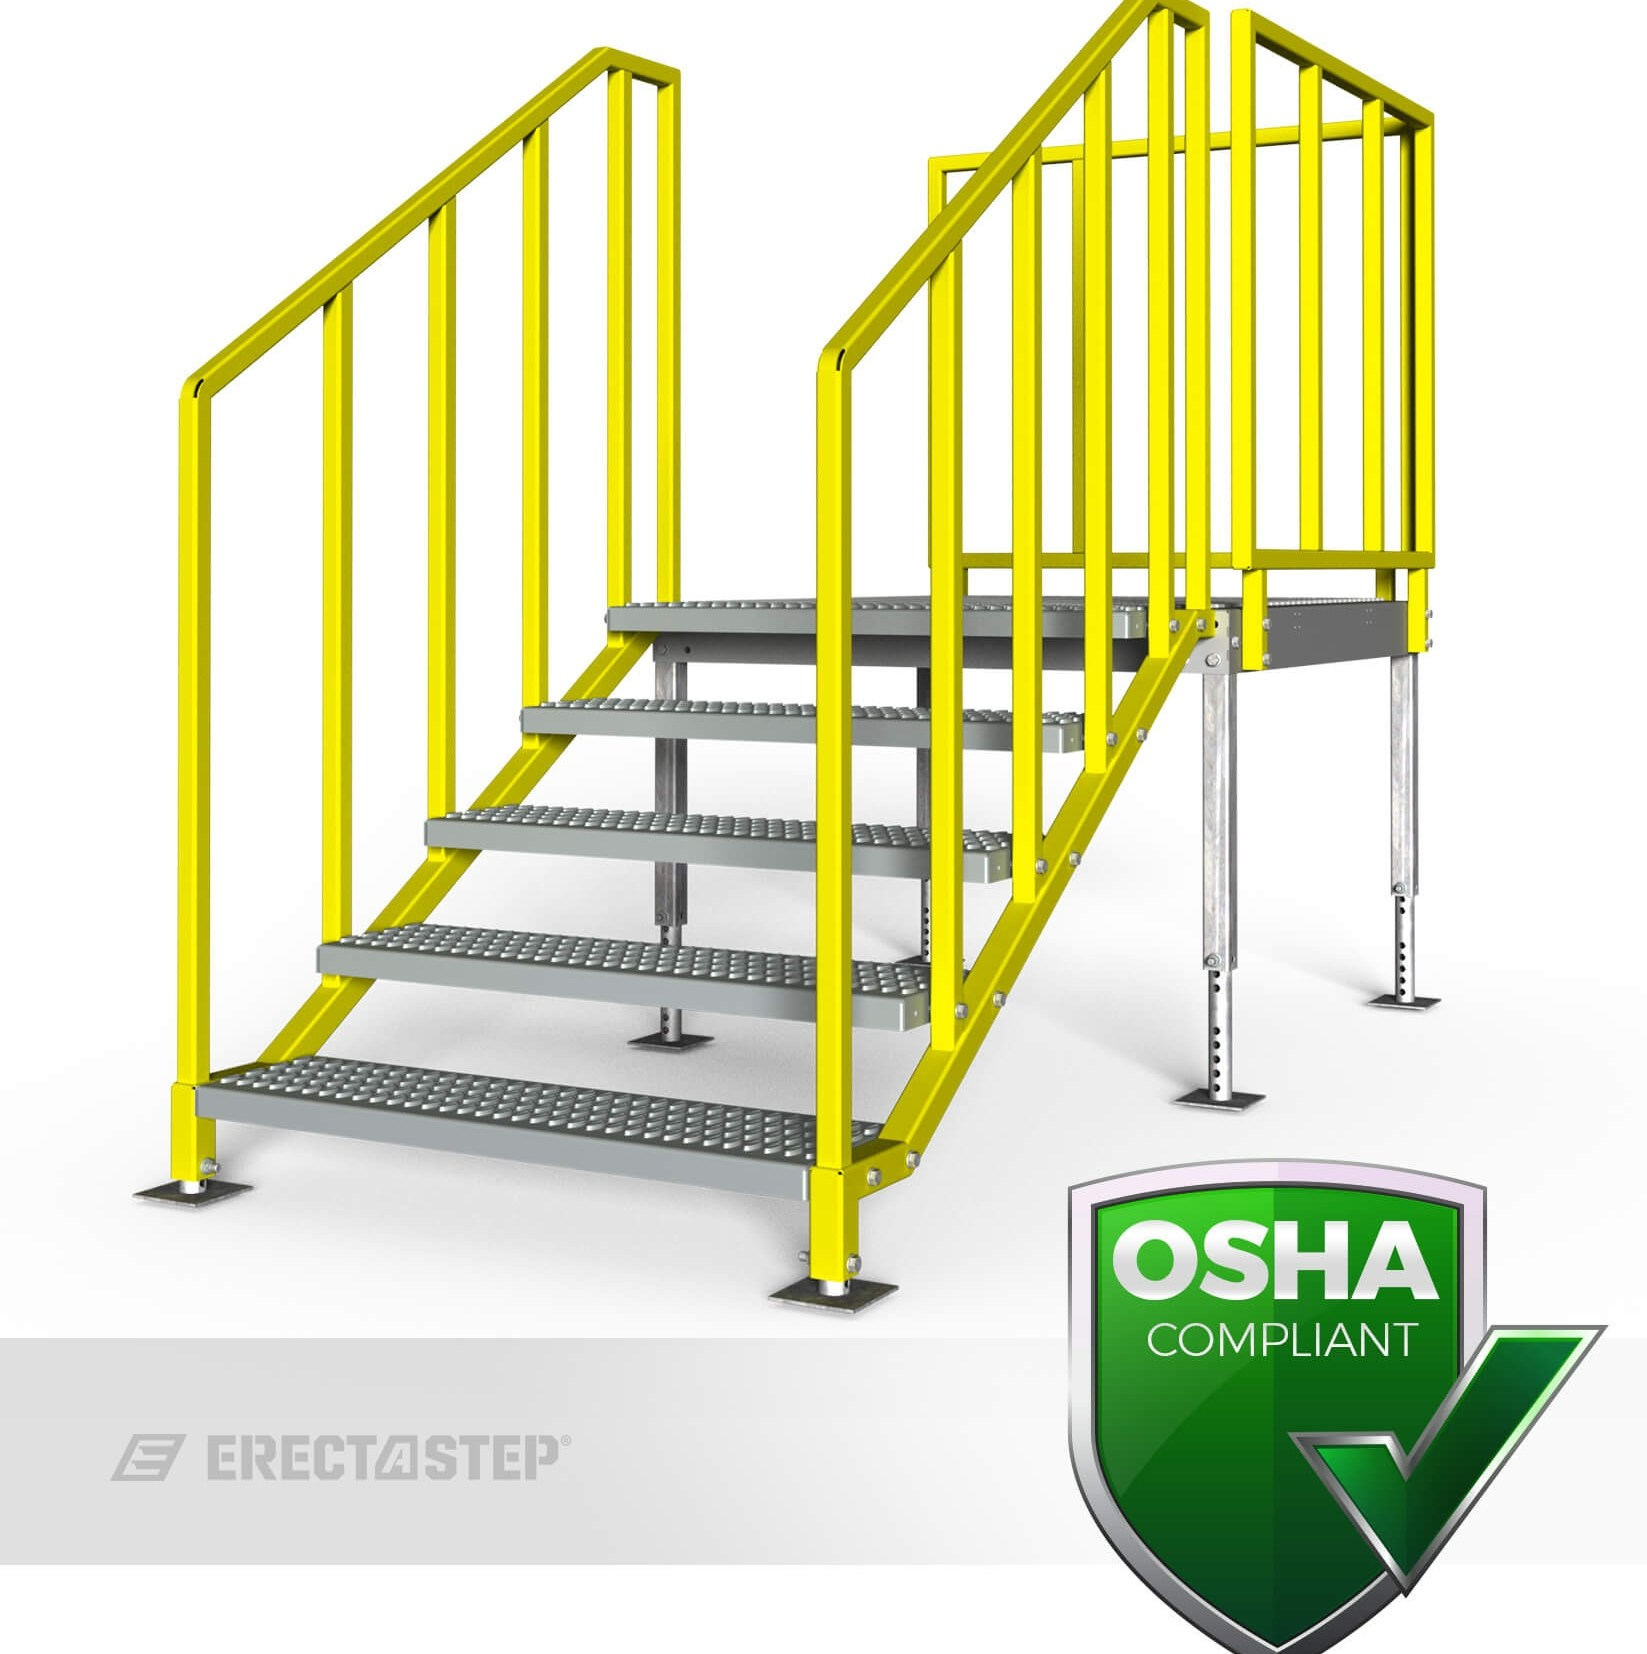 Aluminum Portable Stairs Rollastep | Portable Stairs With Handrail | Chair | Plastic Portable | Camper | Wall Mounted | Ladder